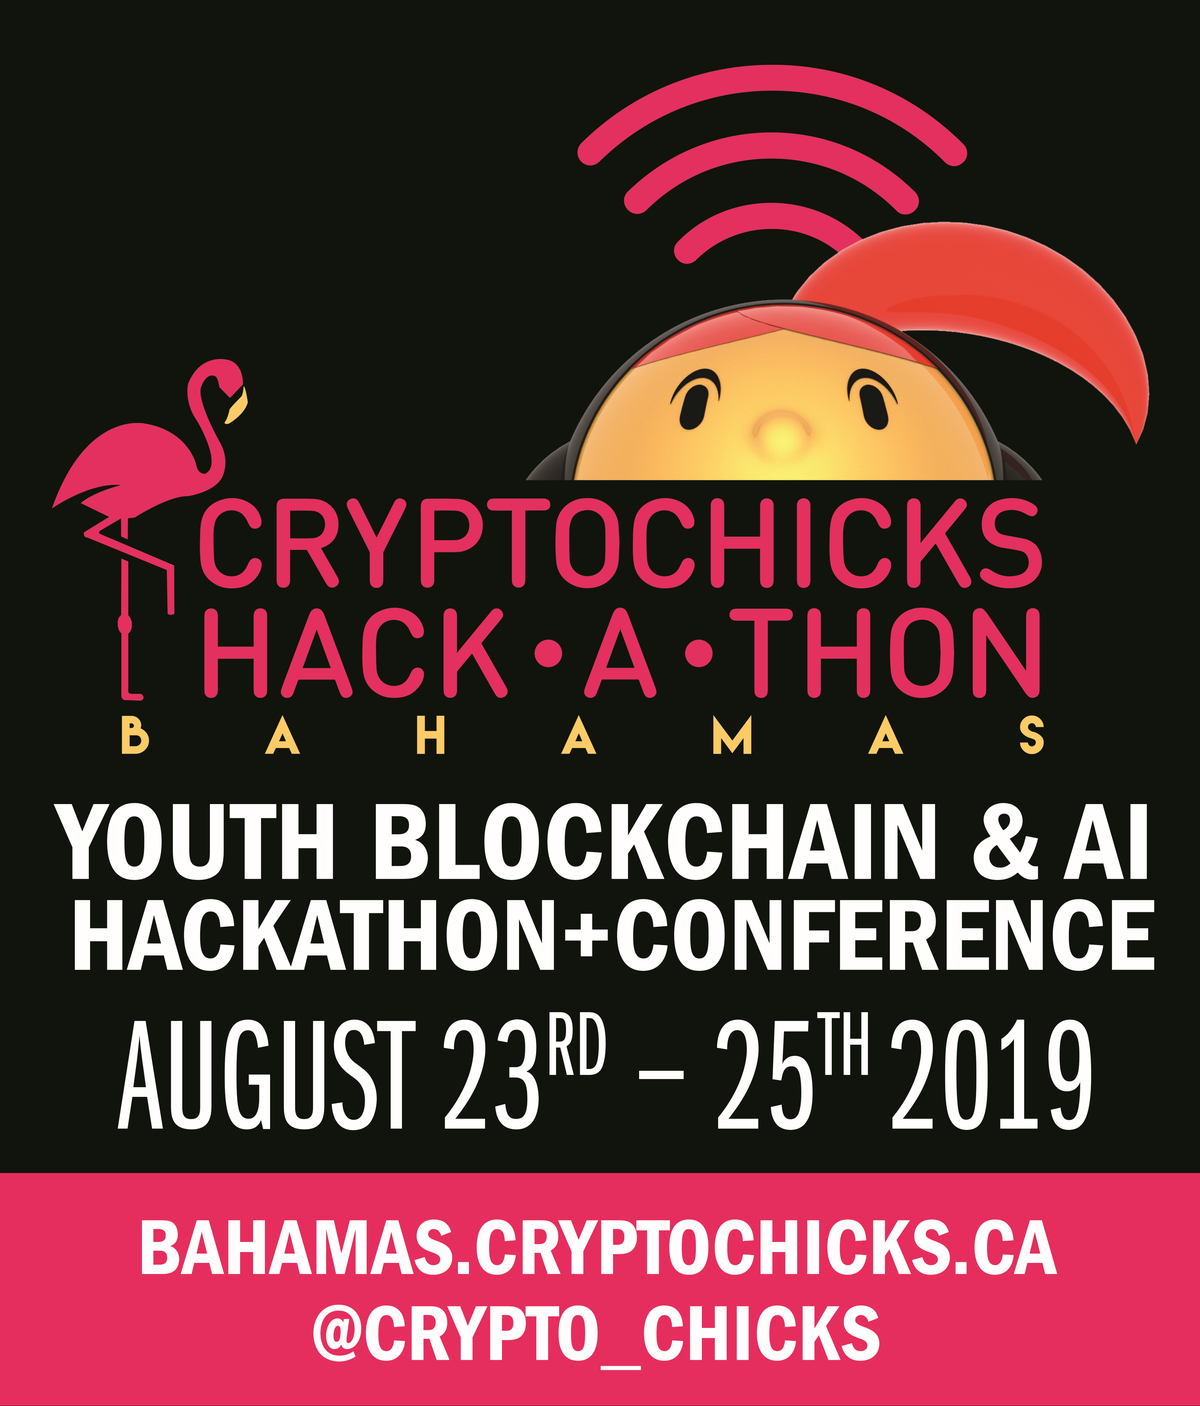 CryptoChicks Blockchain and AI Youth Hackathon 2019 in The Bahamas